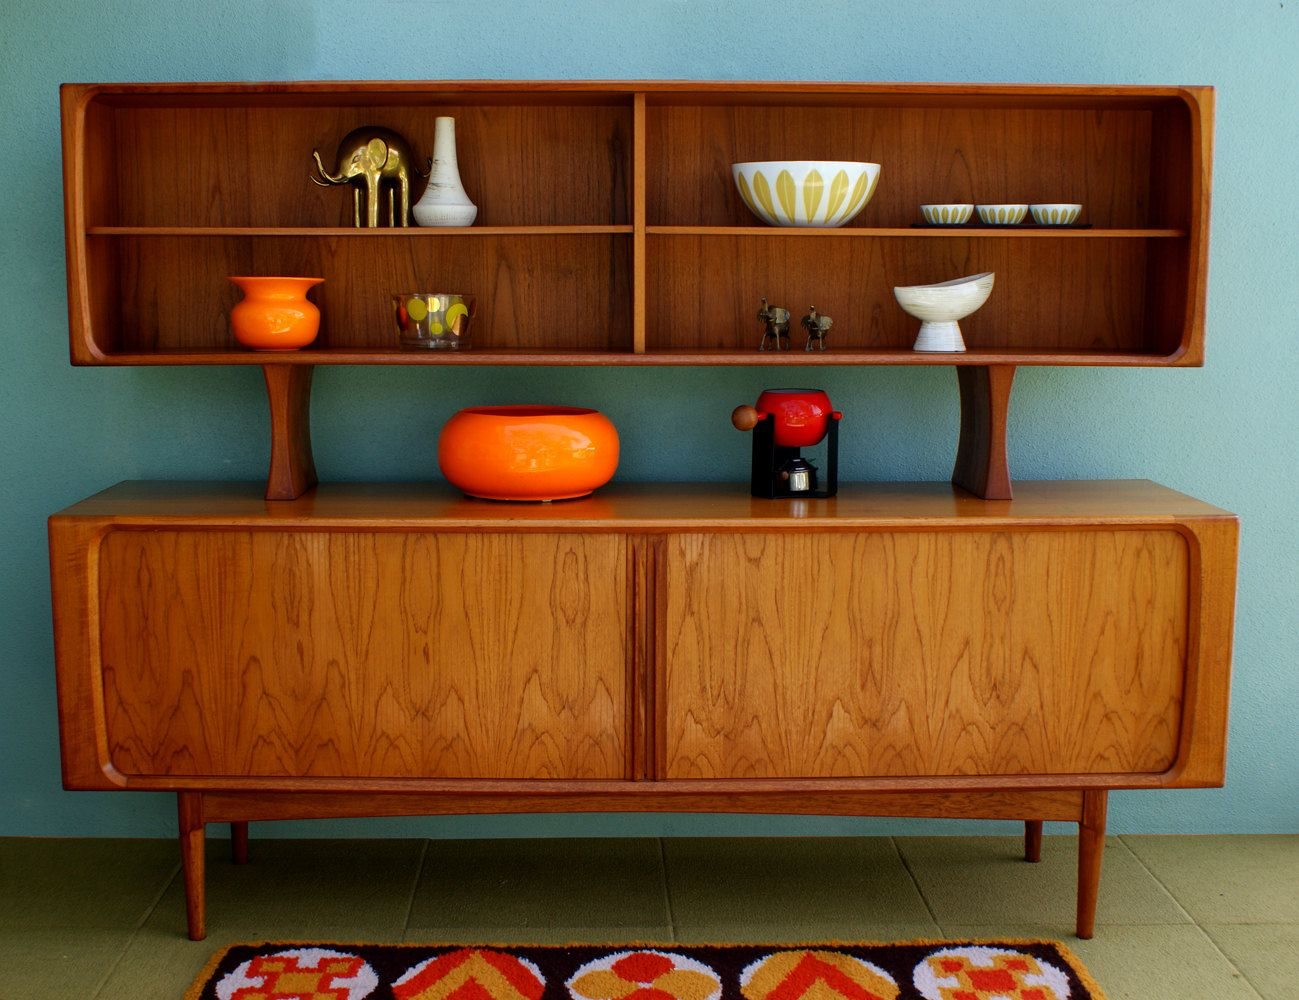 mid century modern dining room hutch. Mid Century Danish Modern Arne Vodder Sideboard Cabinet with Tambour  Doors these floating sideboards are amazing mid century danish Google Search